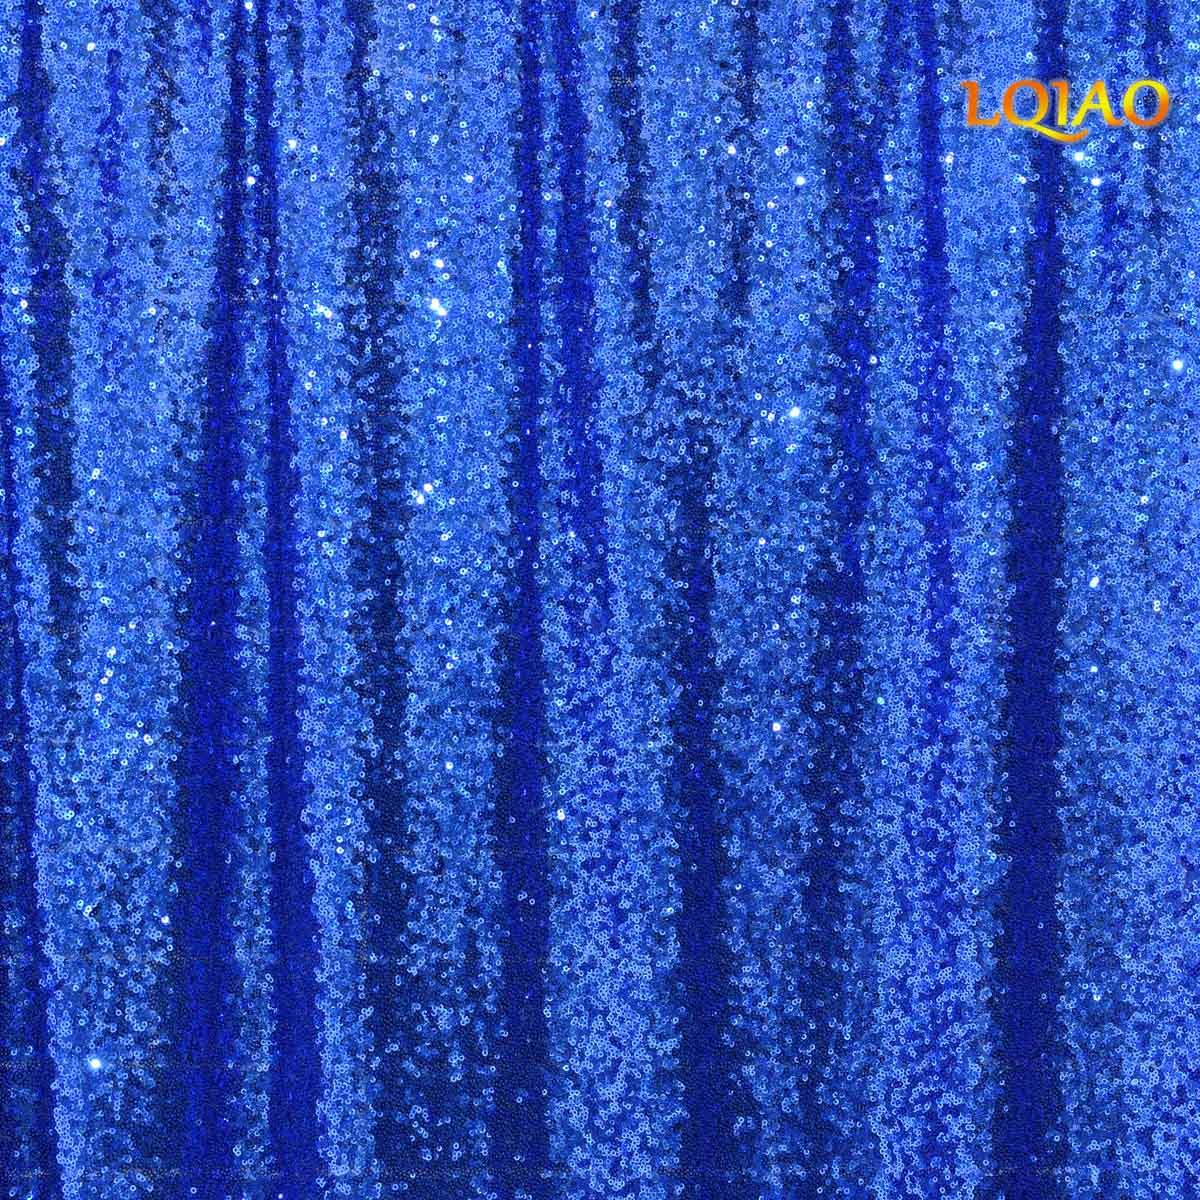 LQIAO 20FTx10FT Royal Blue Shimmer Sequin Fabric Backdrp Wedding Photo Booth Photography Backdrops Background DIY Party Banquet Decoration by LQIAO